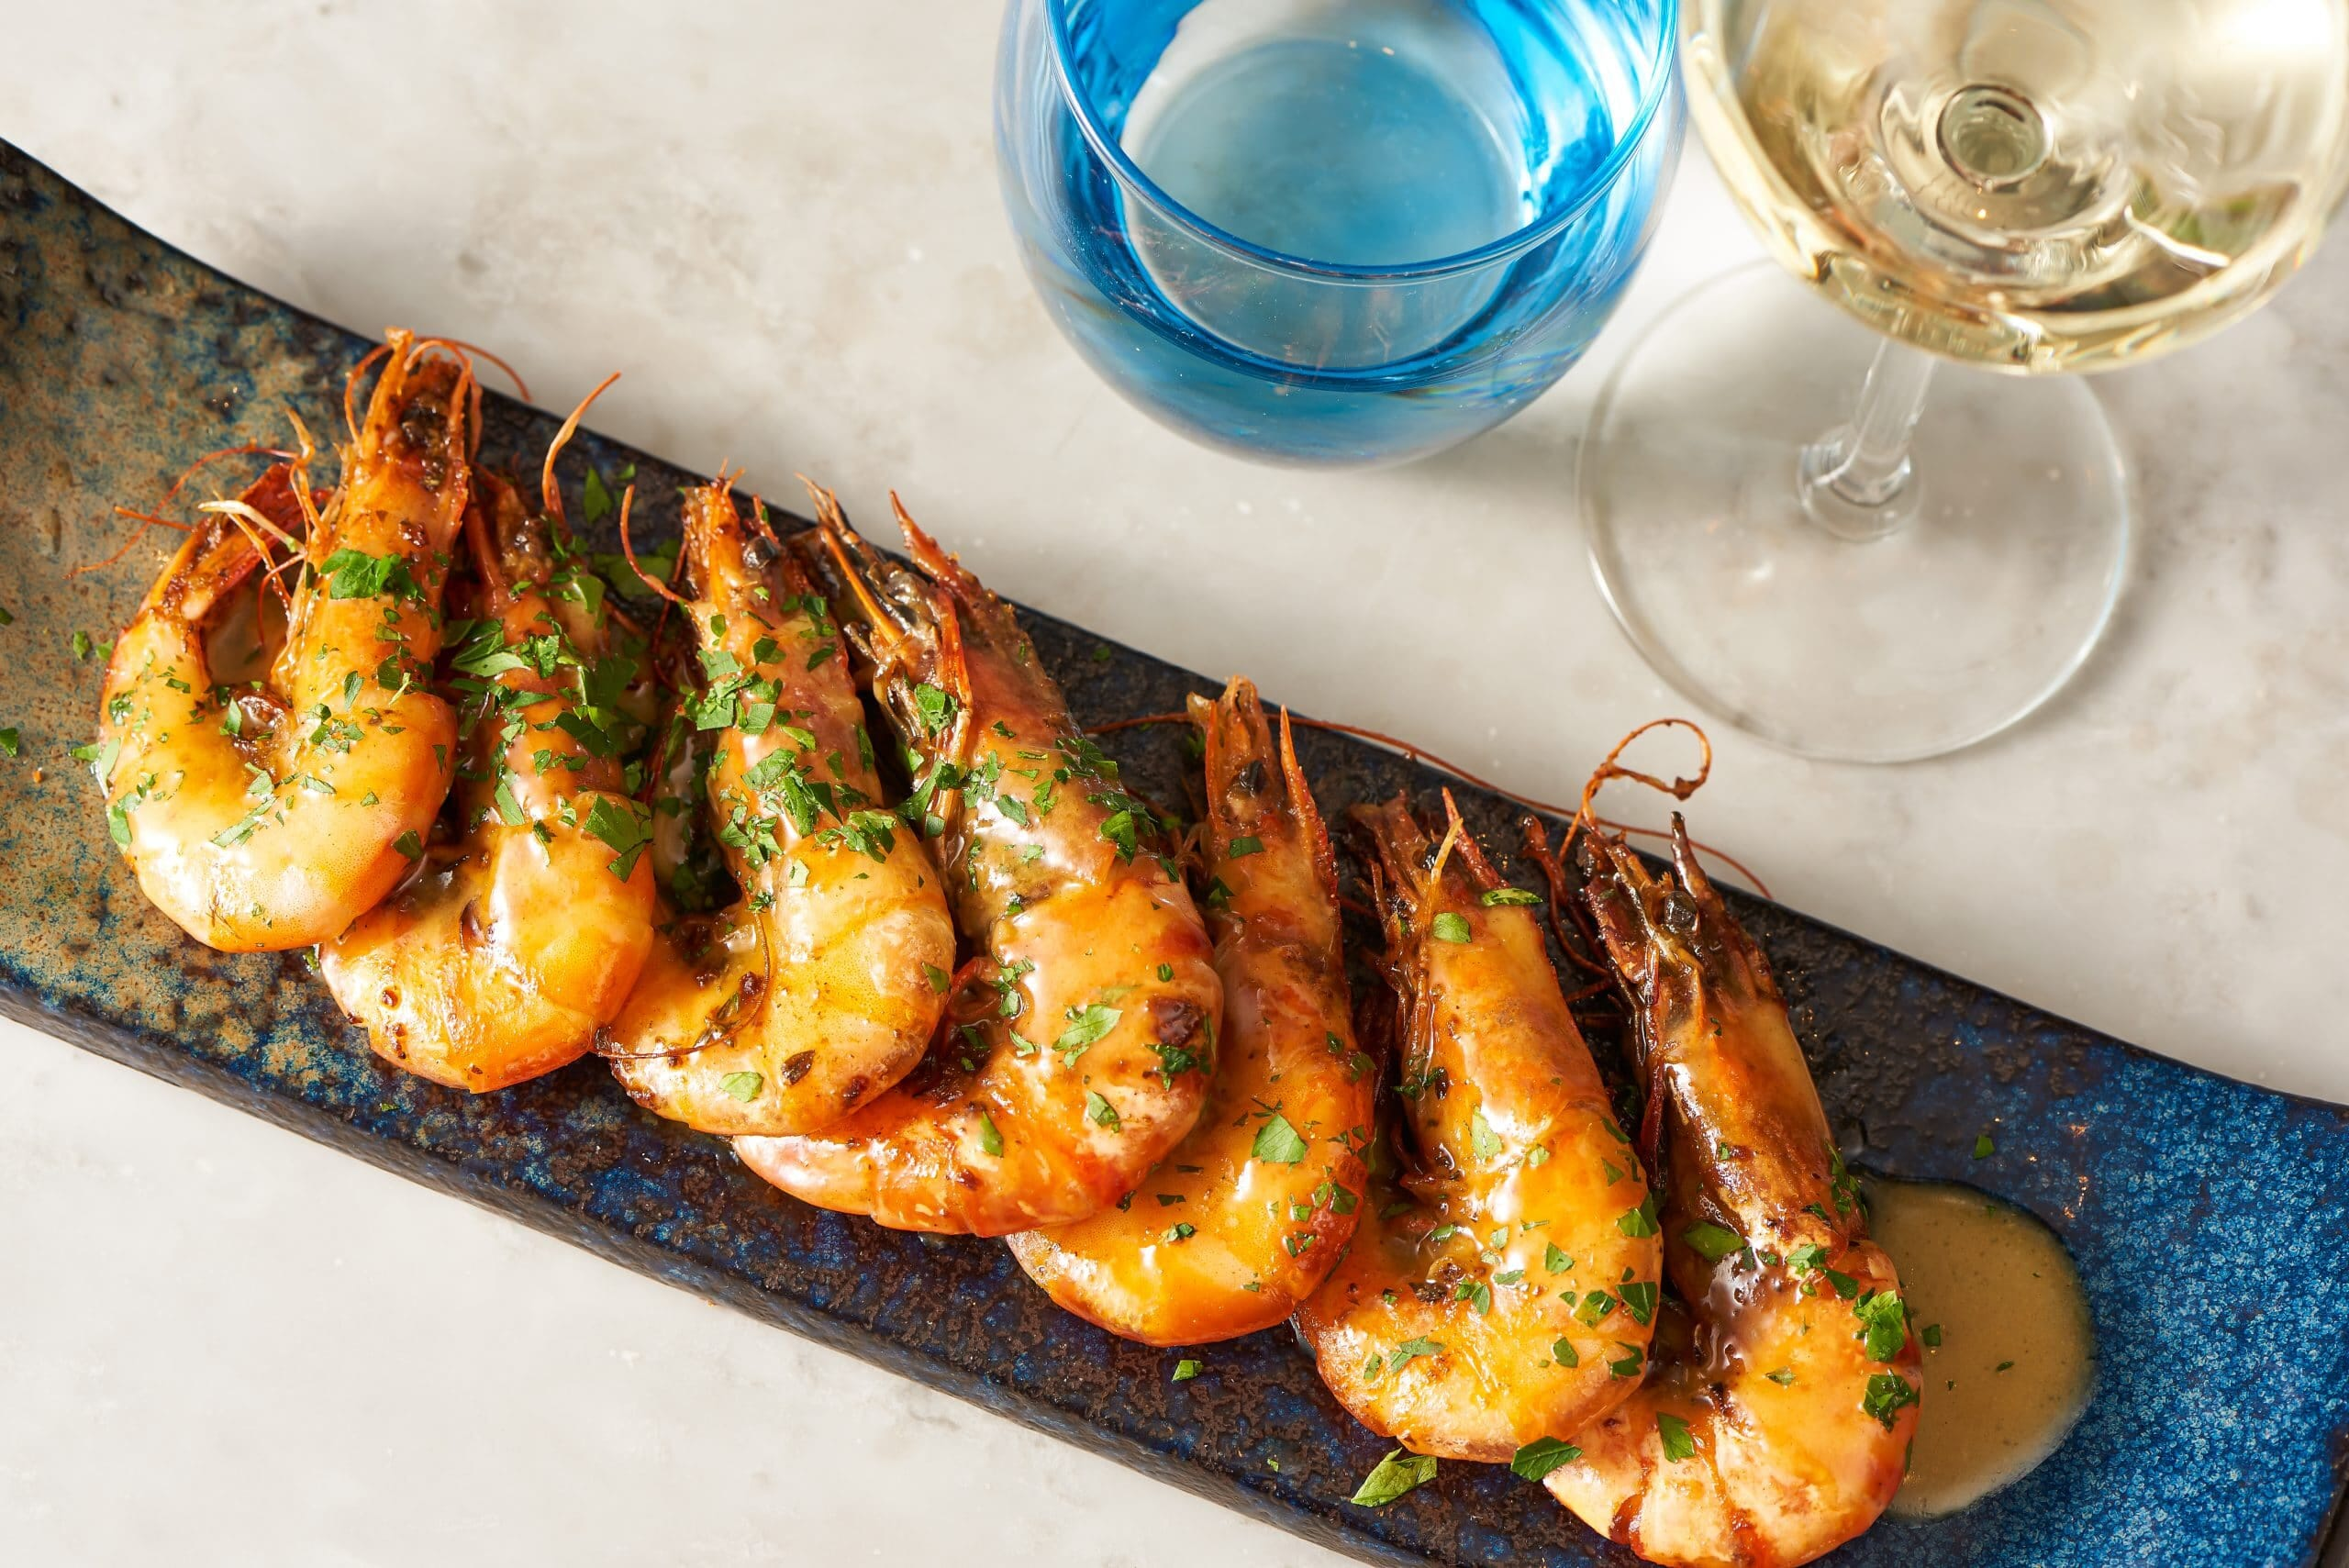 Grilled king prawns and white wine restaurant food photography London